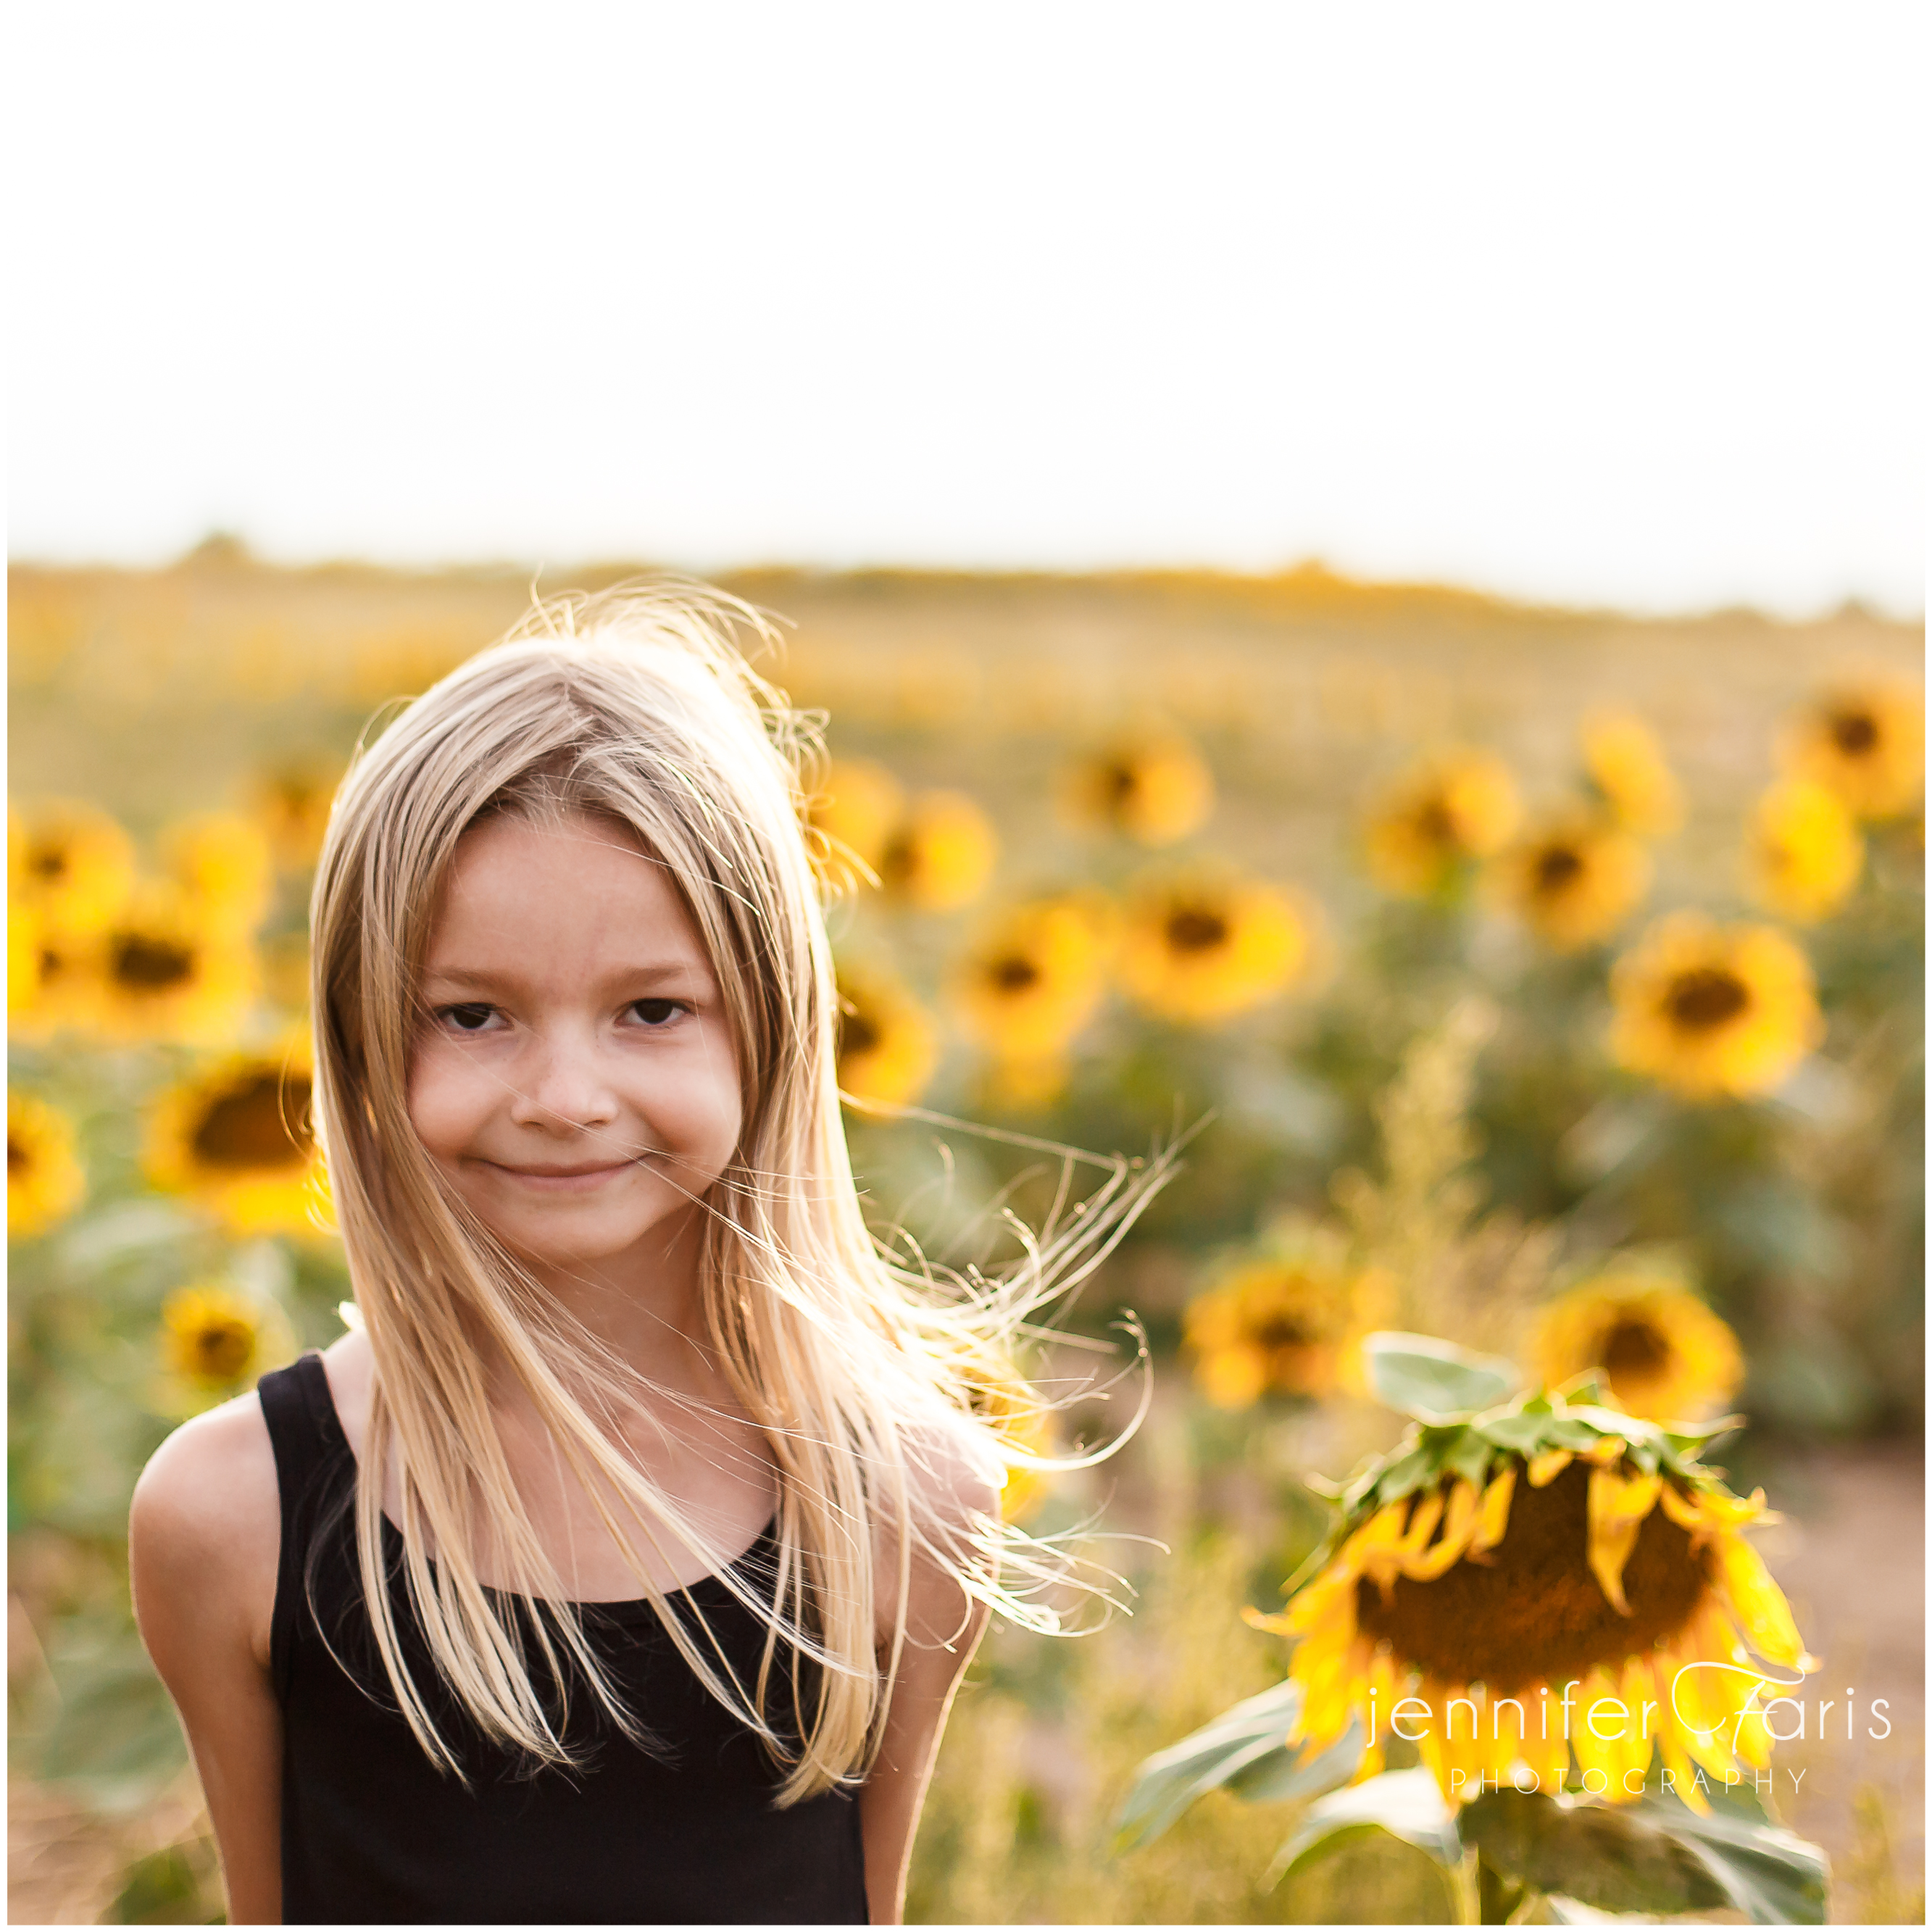 5 Reasons to do an End of Summer Photo Shoot